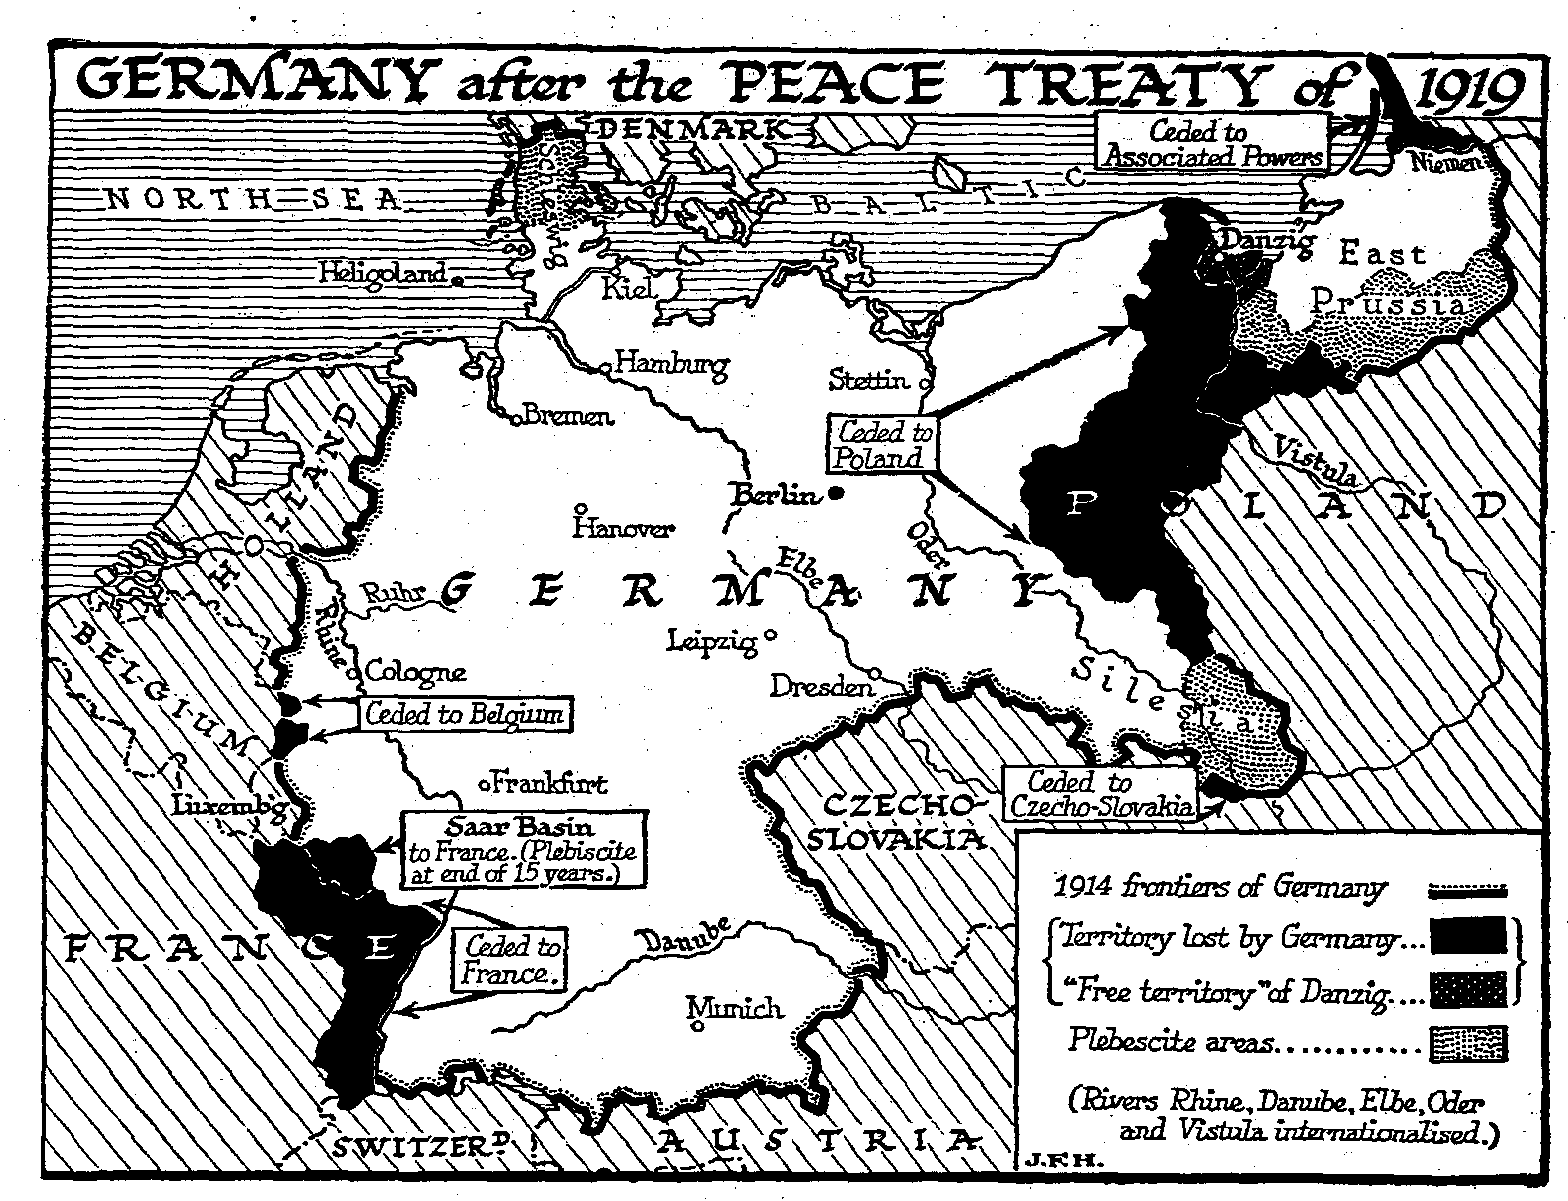 The Versailles Peace Treaty – Ending The Great War In 1918